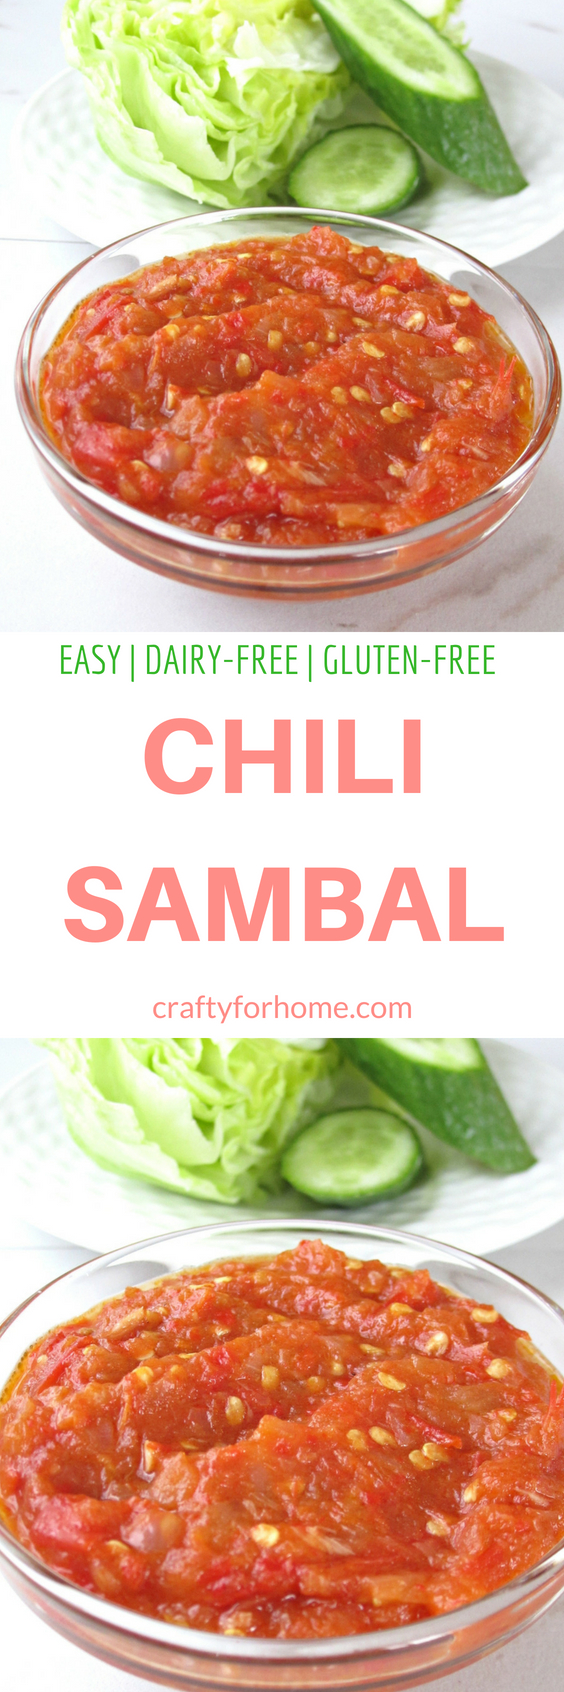 Easy Dairy-free, gluten-free chili sambal, homemade sambal oelek with all simple ingredients to serve it as condiment or dipping sauce #dairyfree #chilisauce #sambaloelek #condiment for full recipe on craftyforhome.com